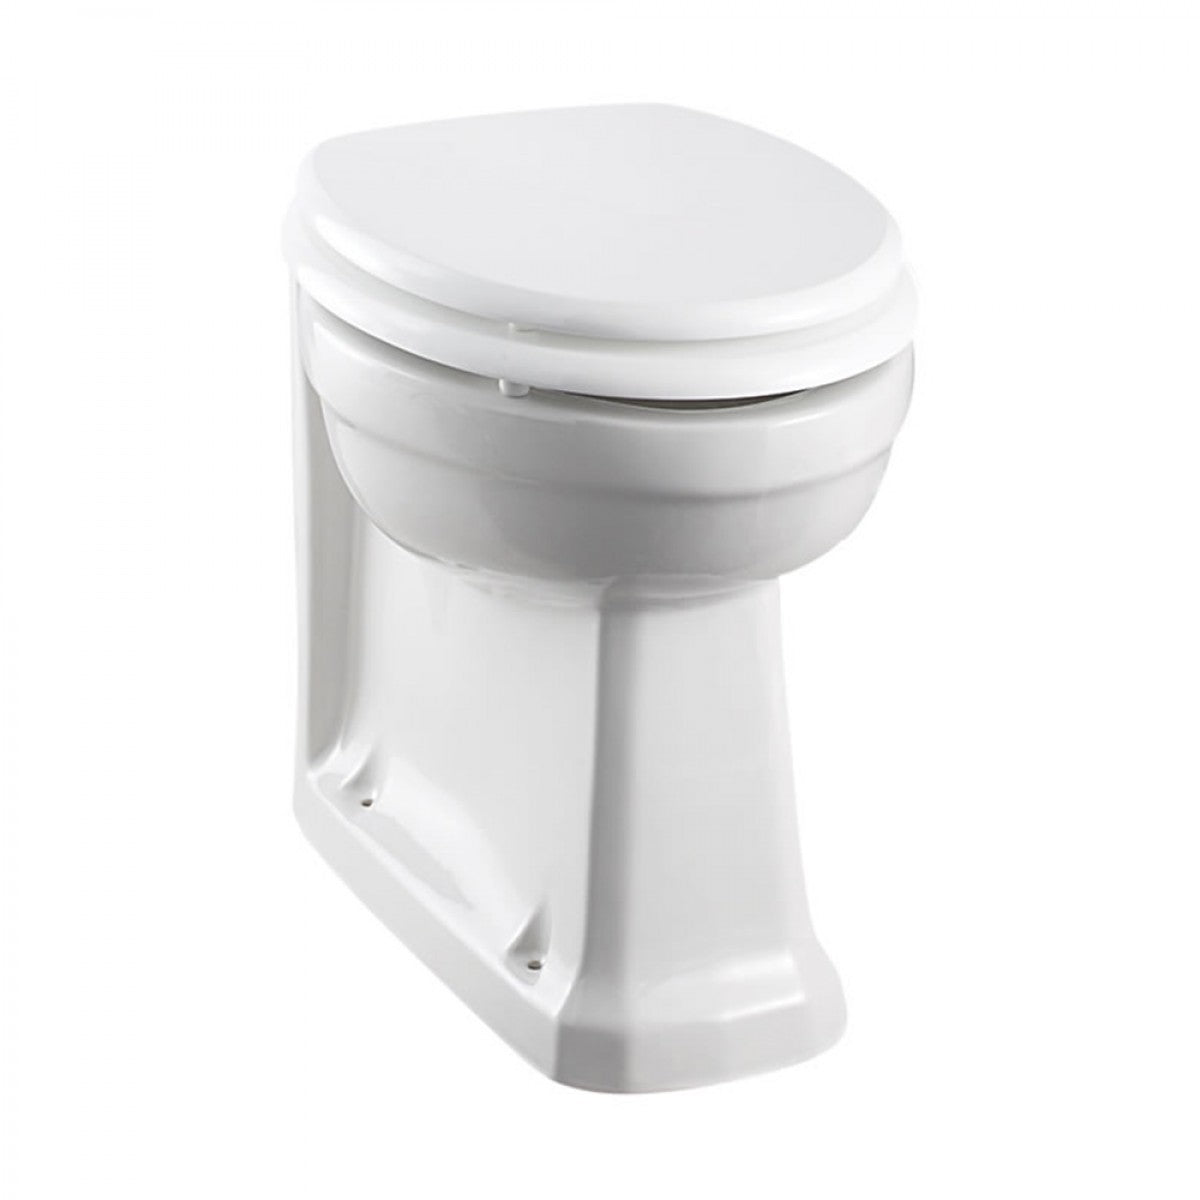 BURLINGTON BACK TO WALL TOILET & SOFT CLOSE SEAT - 480MM PROJECTION